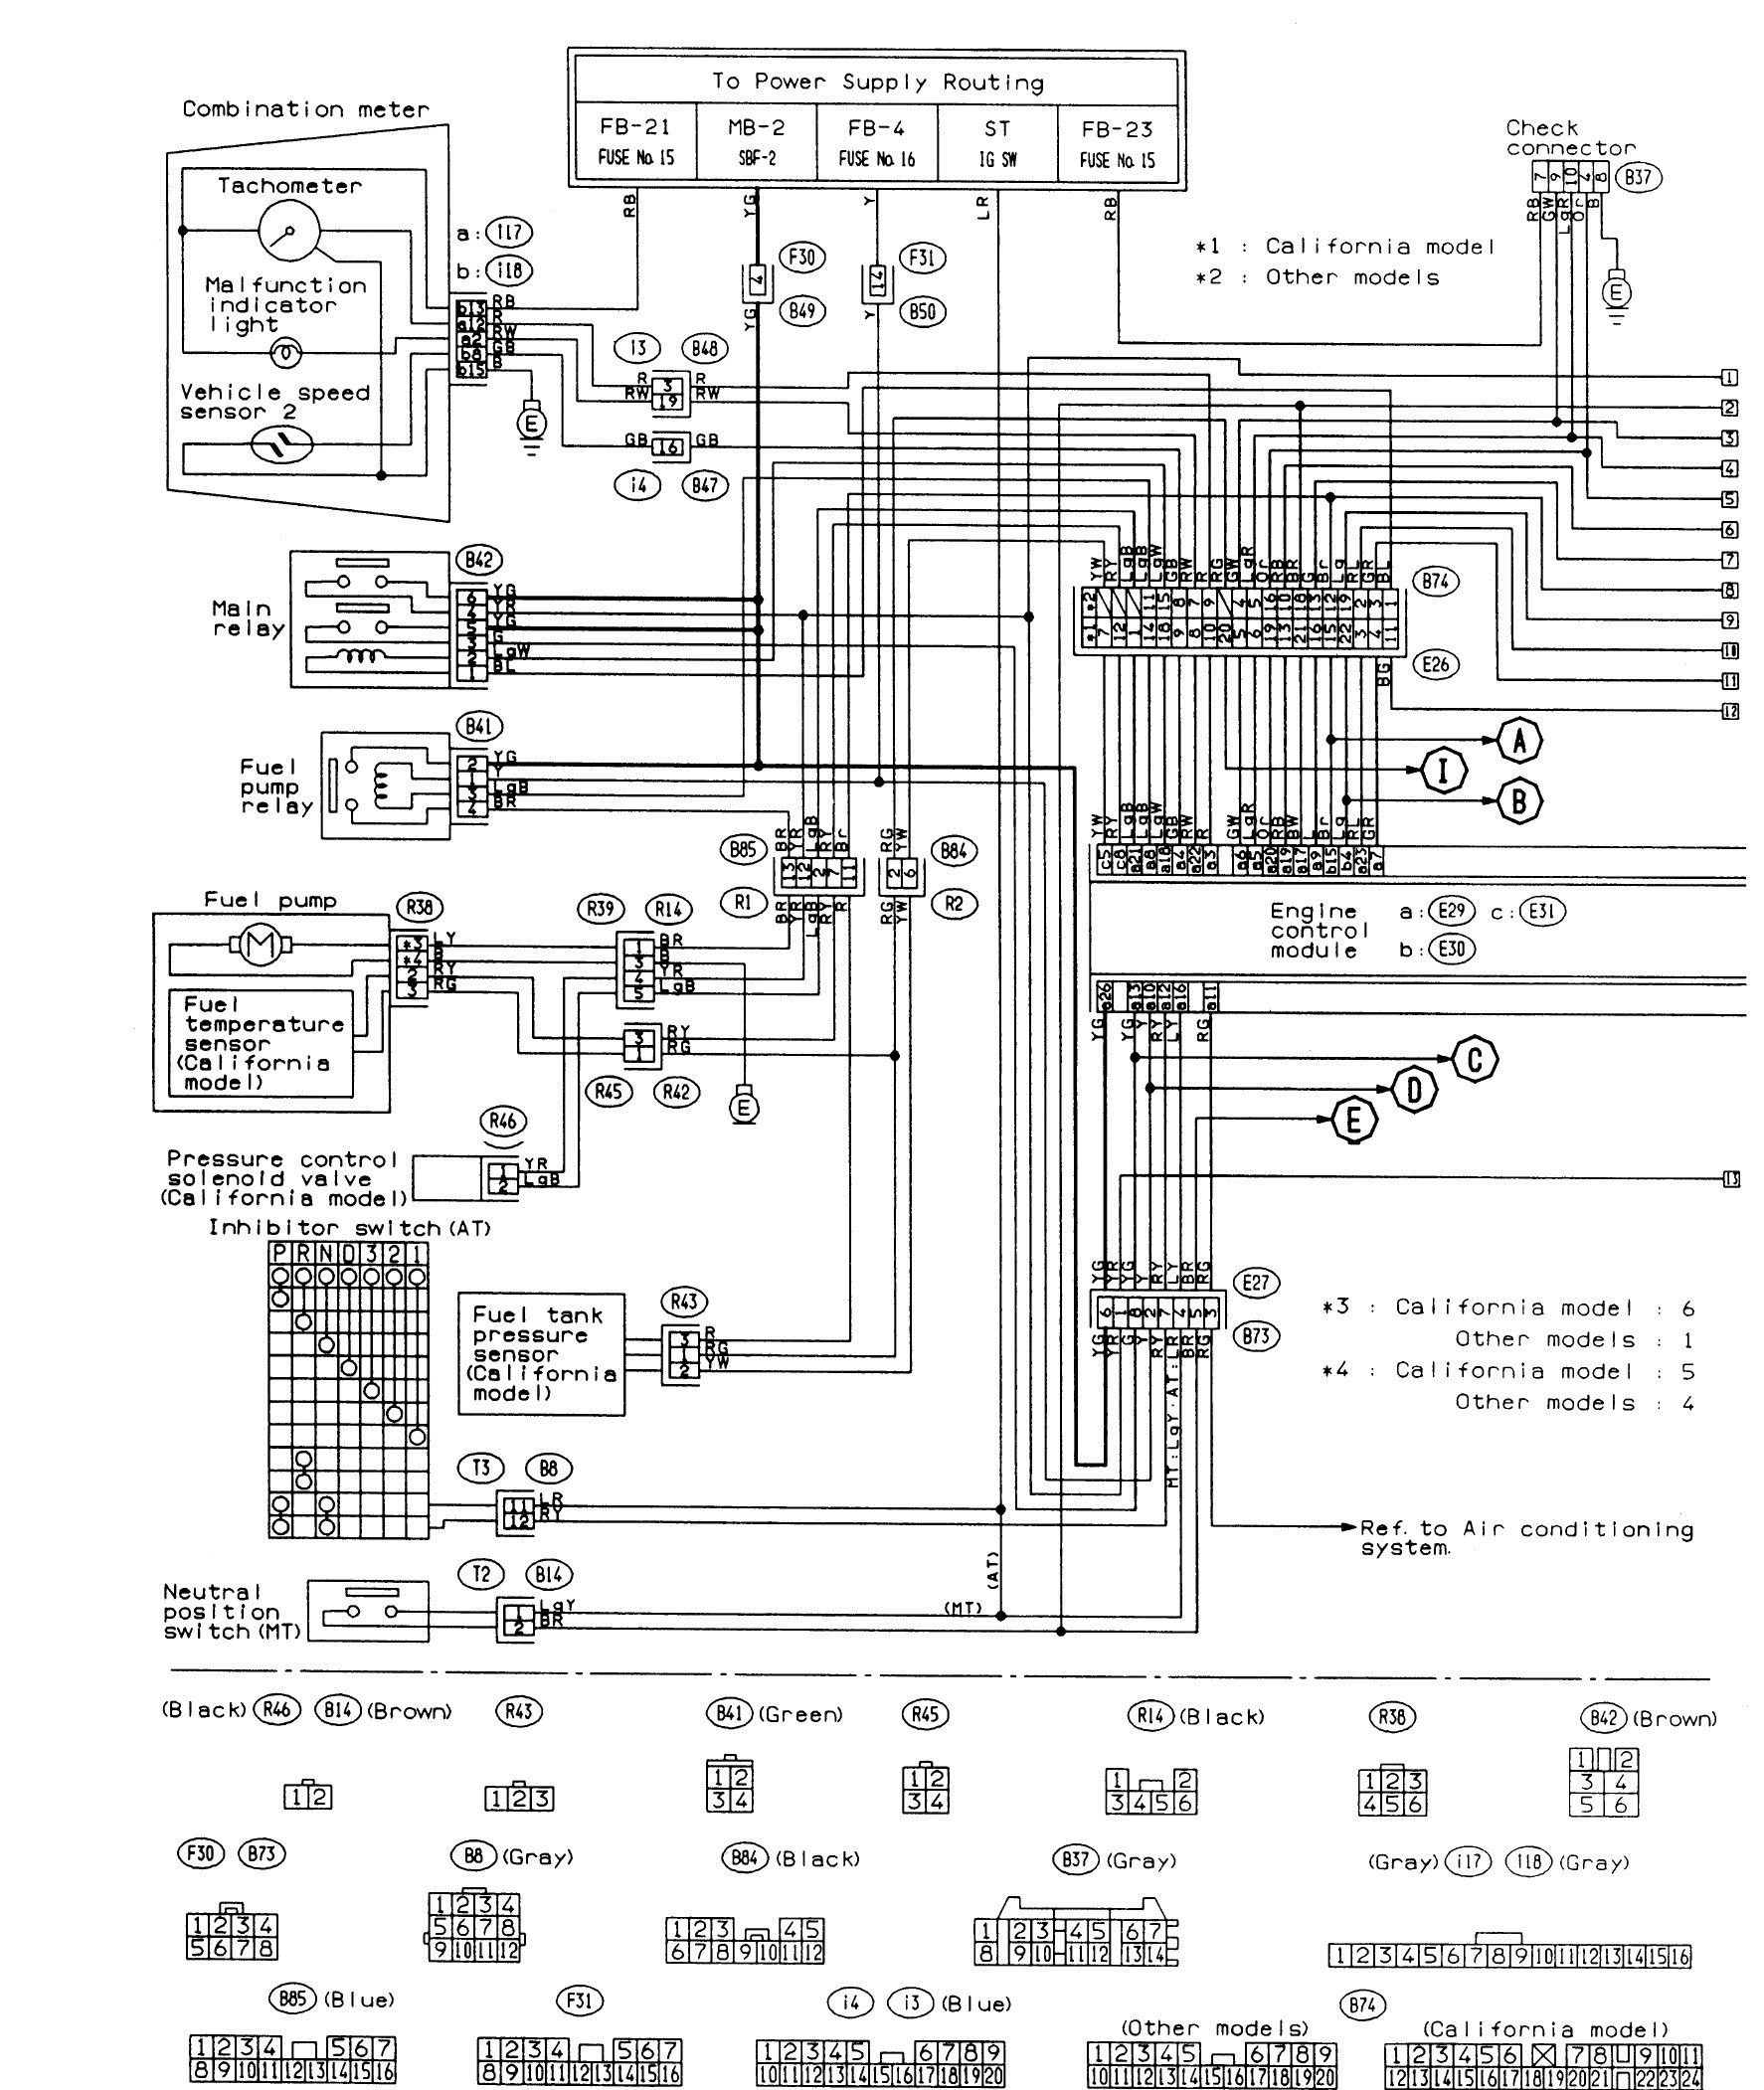 New Wiring Diagram For Subaru Car Radio Diagram Diagramtemplate Diagramsample Subaru Subaru Impreza Electrical Diagram